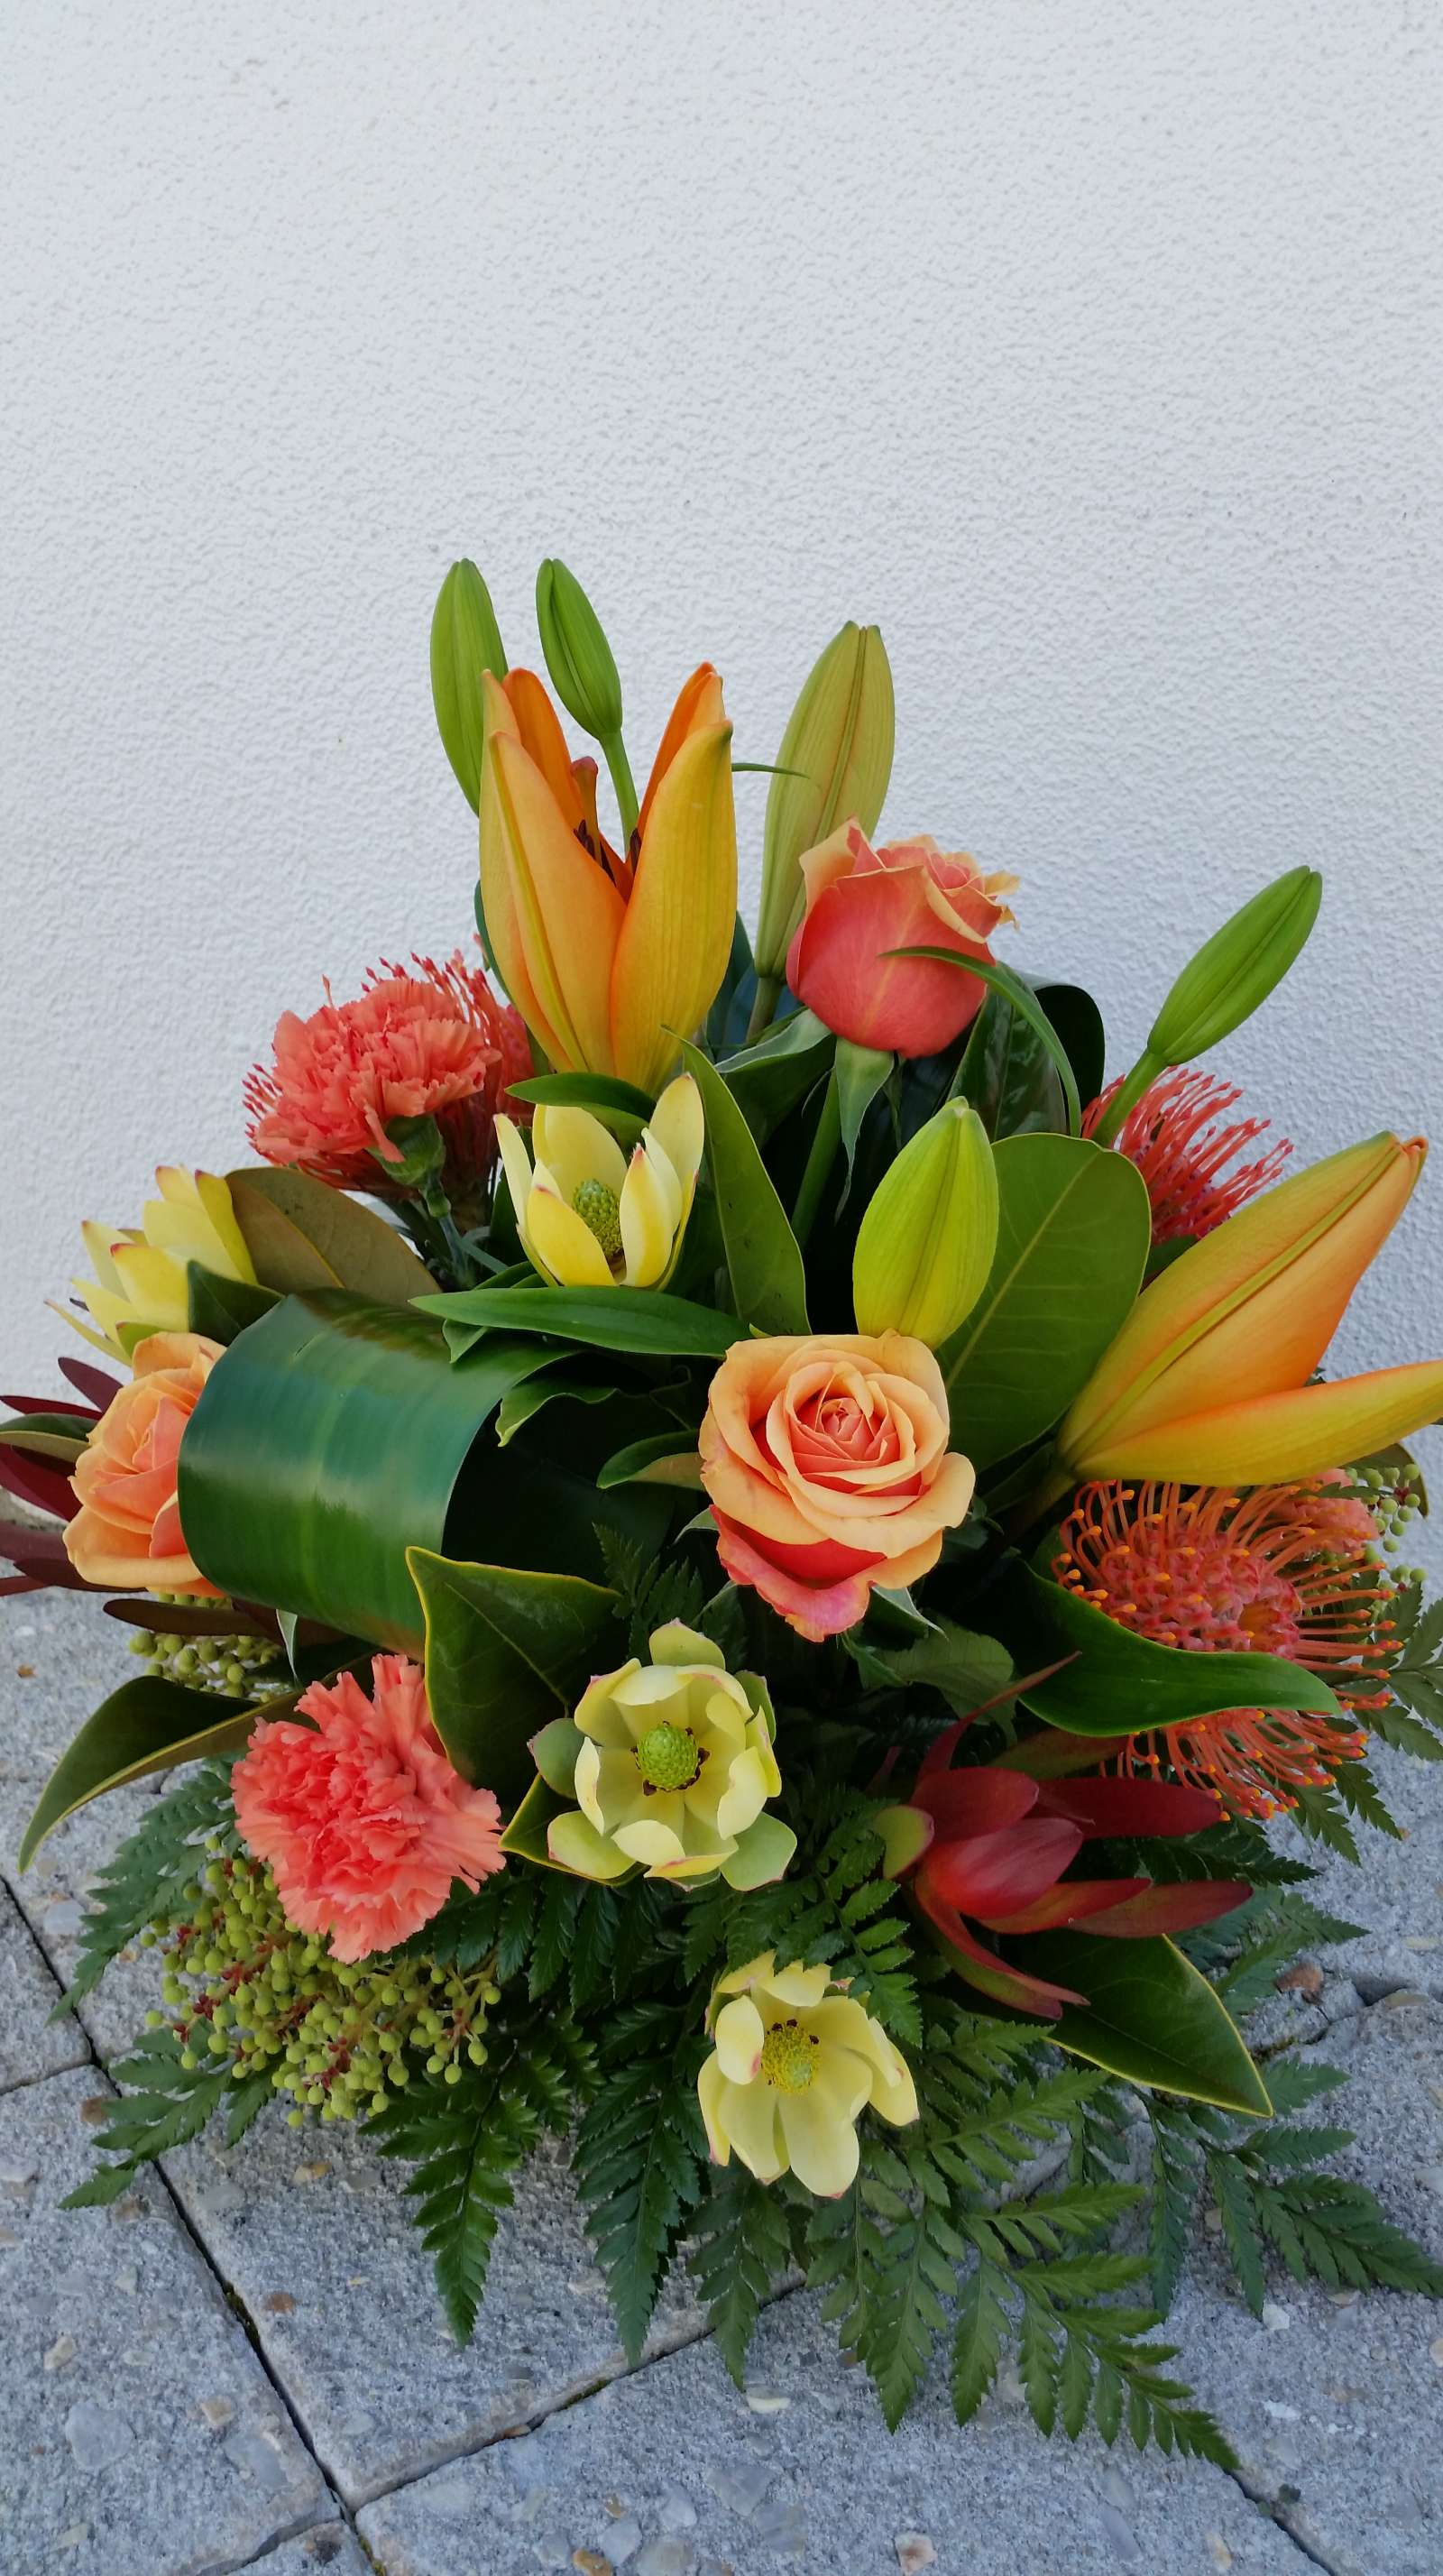 Perth Corporate Flowers Code Bloom Perth Florist Fresh Flower